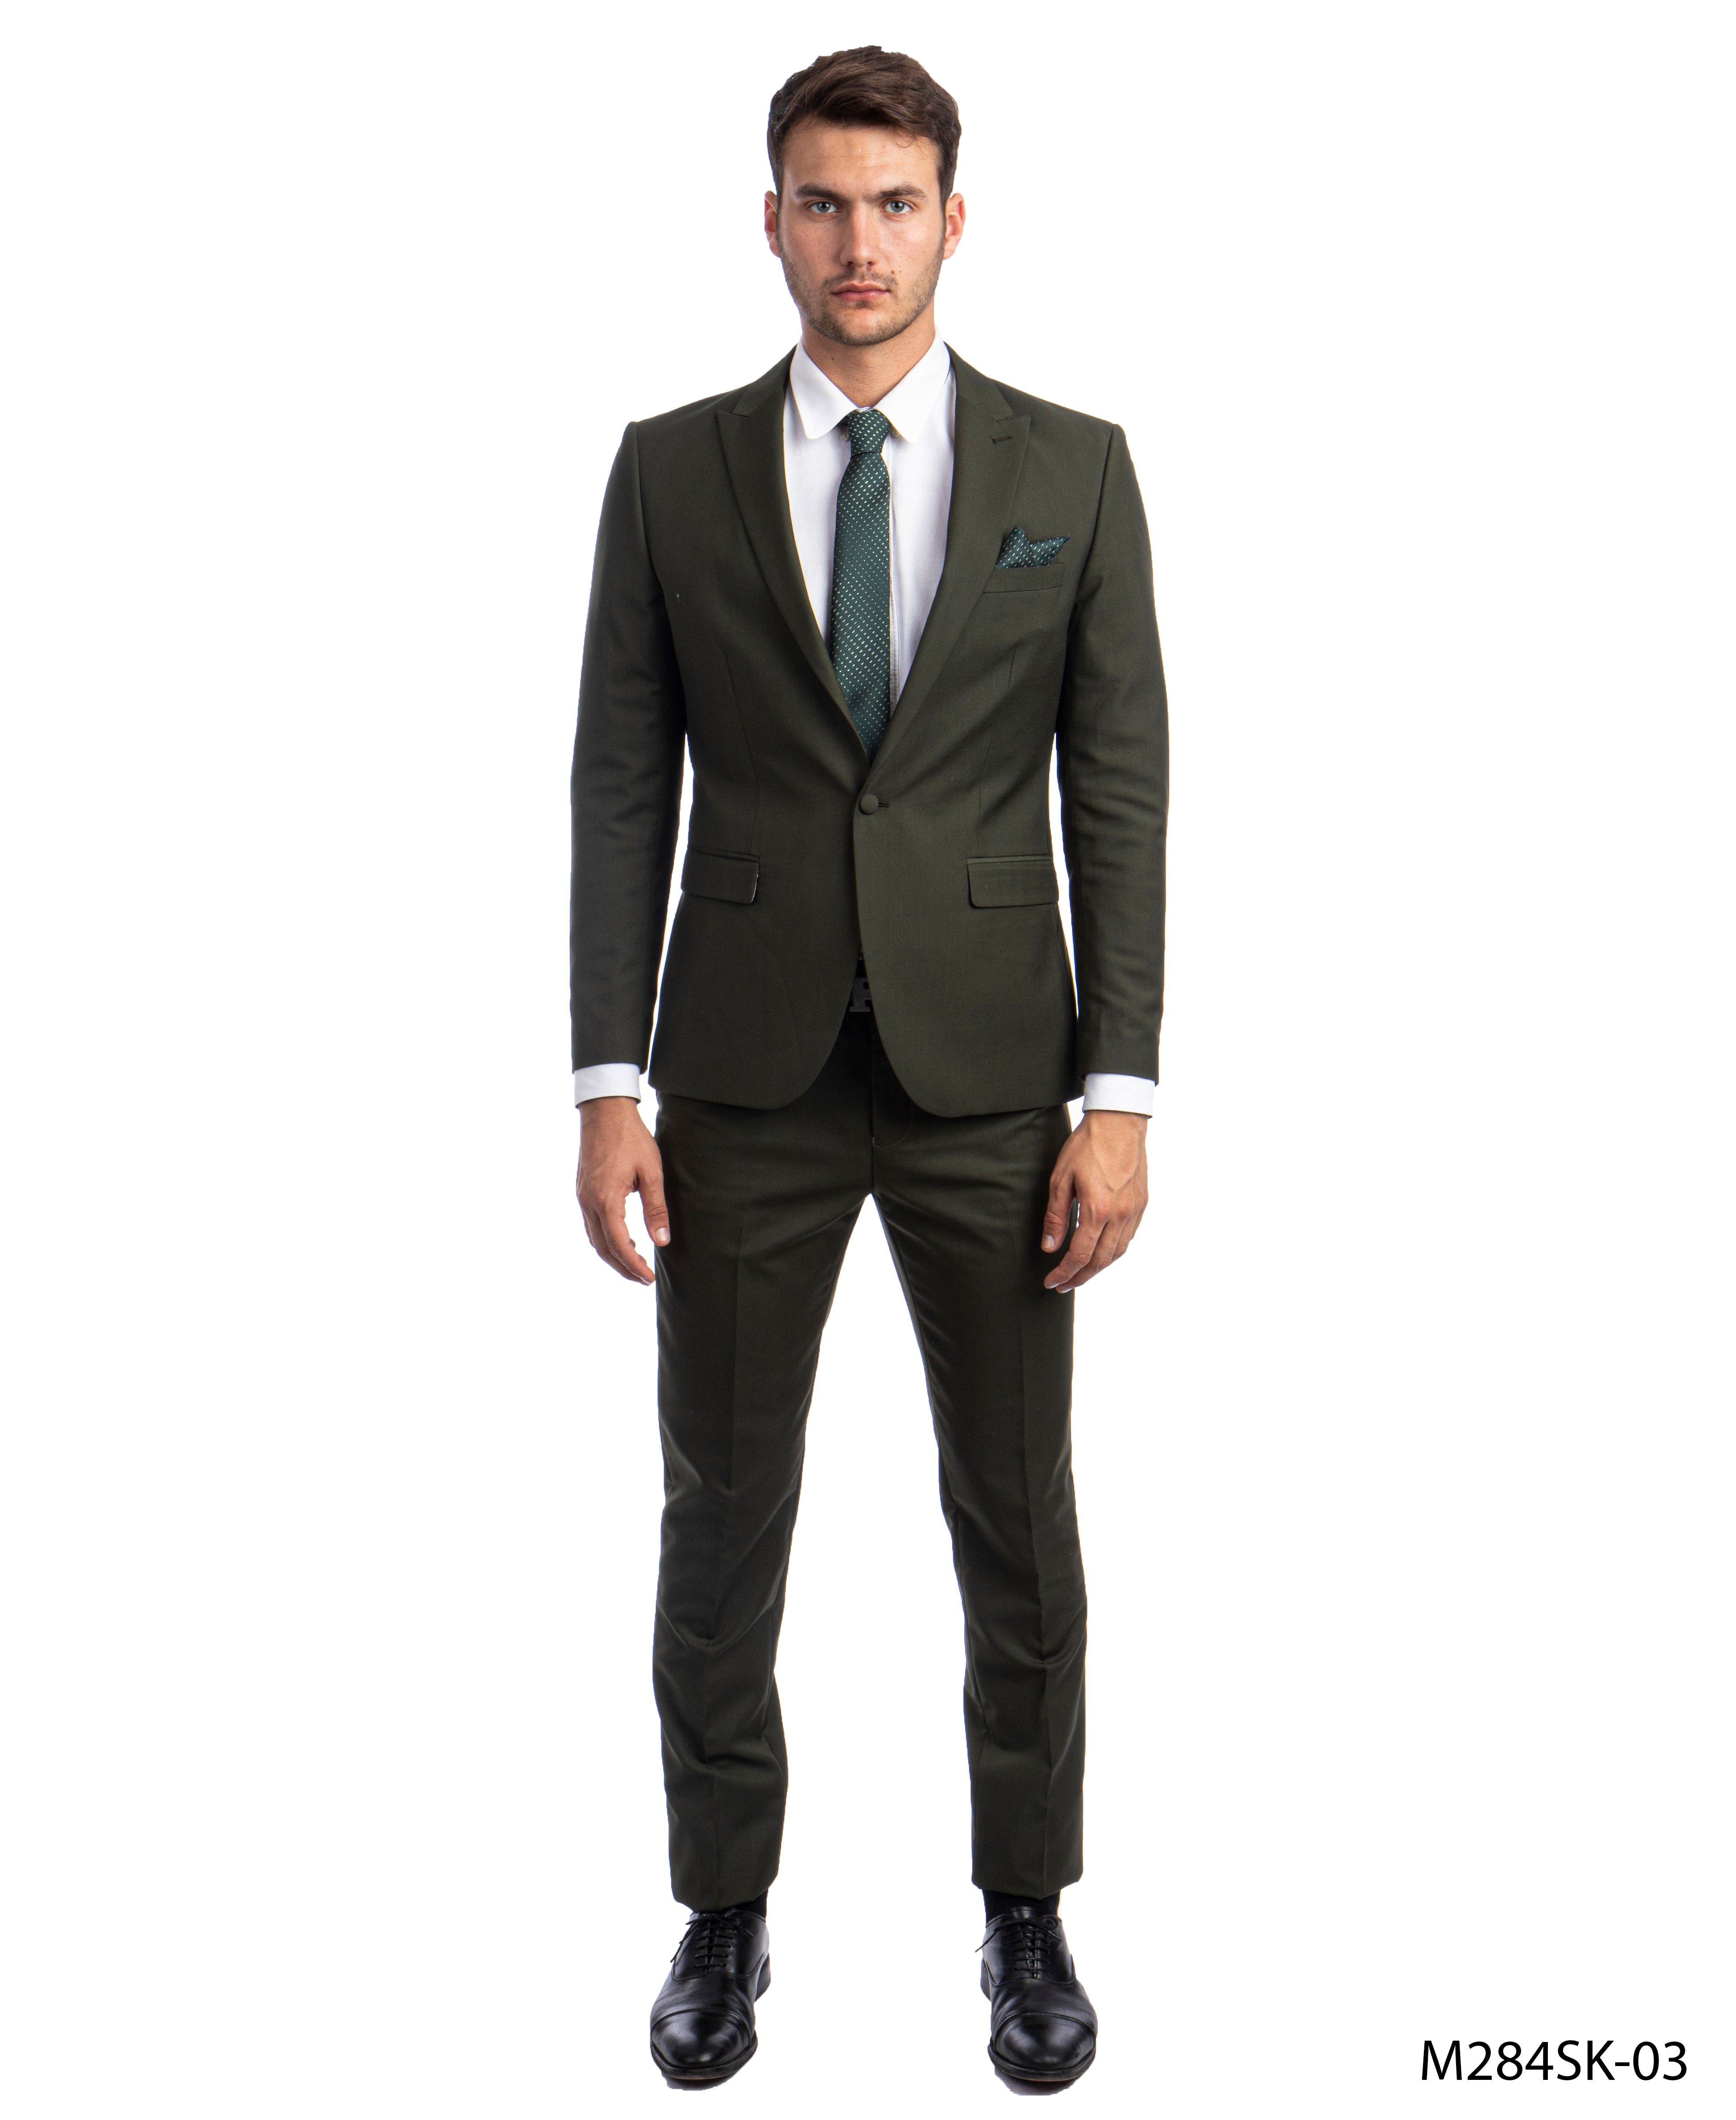 Green Suit For Men Formal Suits For All Ocassions